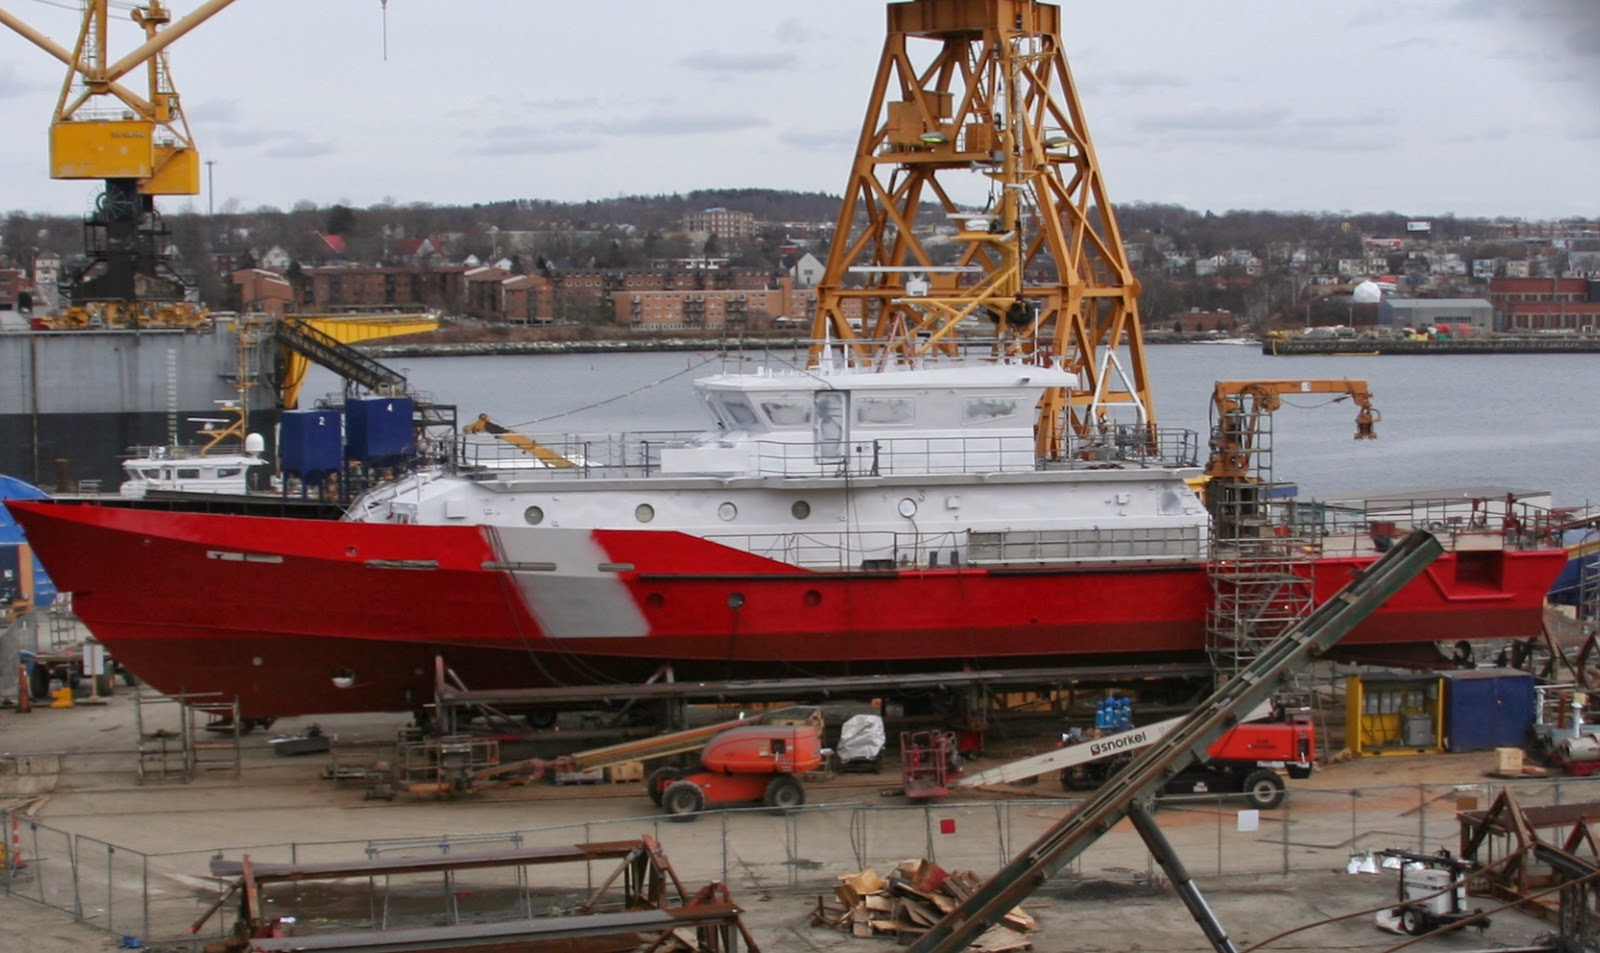 Msm cargo tracking - The Ccgs Captain Goddard M S M Was Rolled Out On Monday After The Launching Of The Ccgs M Charles Saturday Night With The Rollout Having Occurred